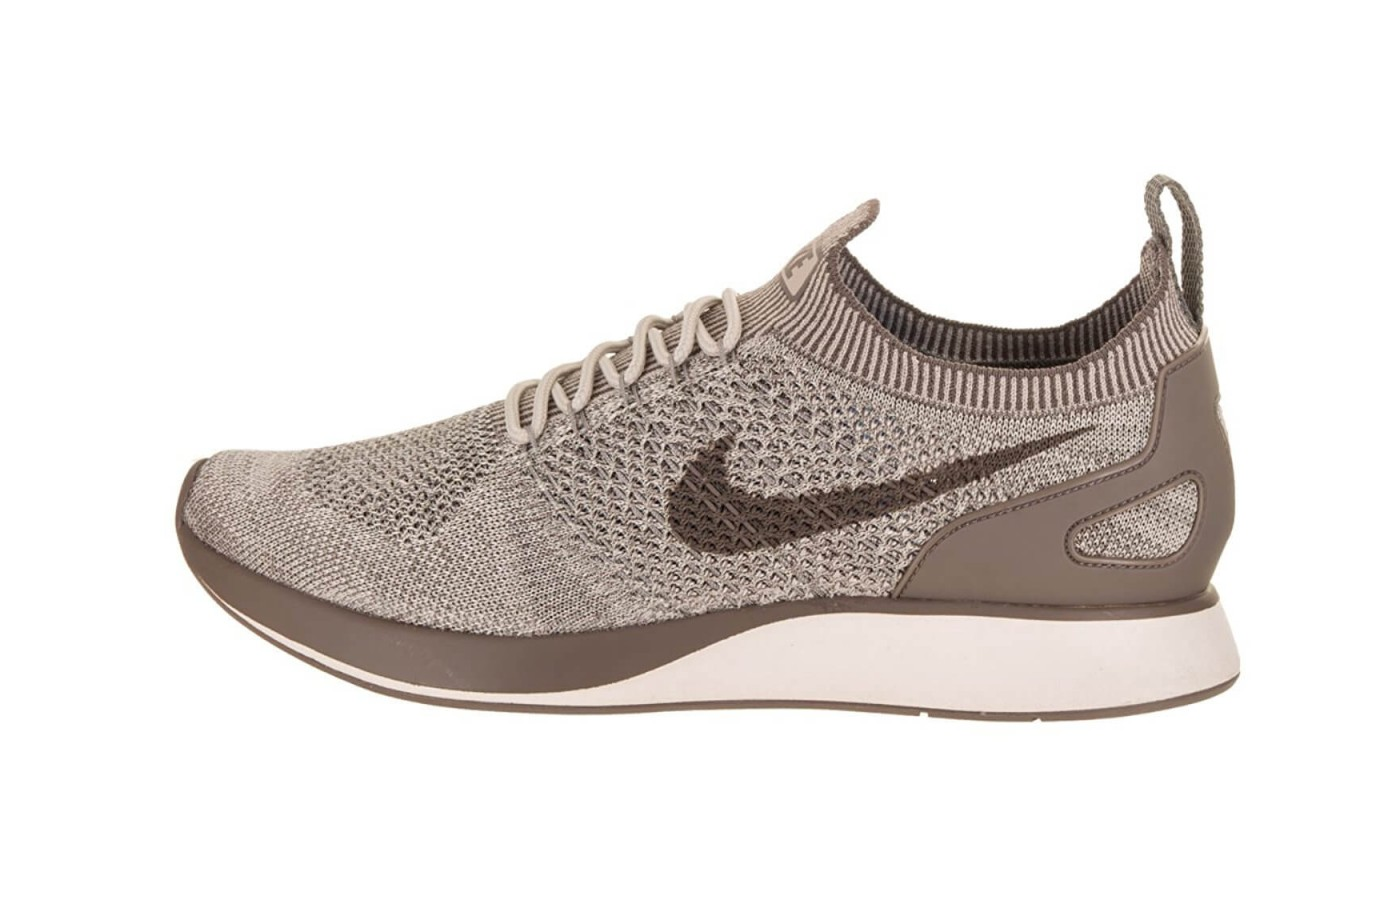 promo code 4270c ce552 ... The Nike Air Zoom Mariah Flyknit Racer features Air Zoom midsole  cushioning ...